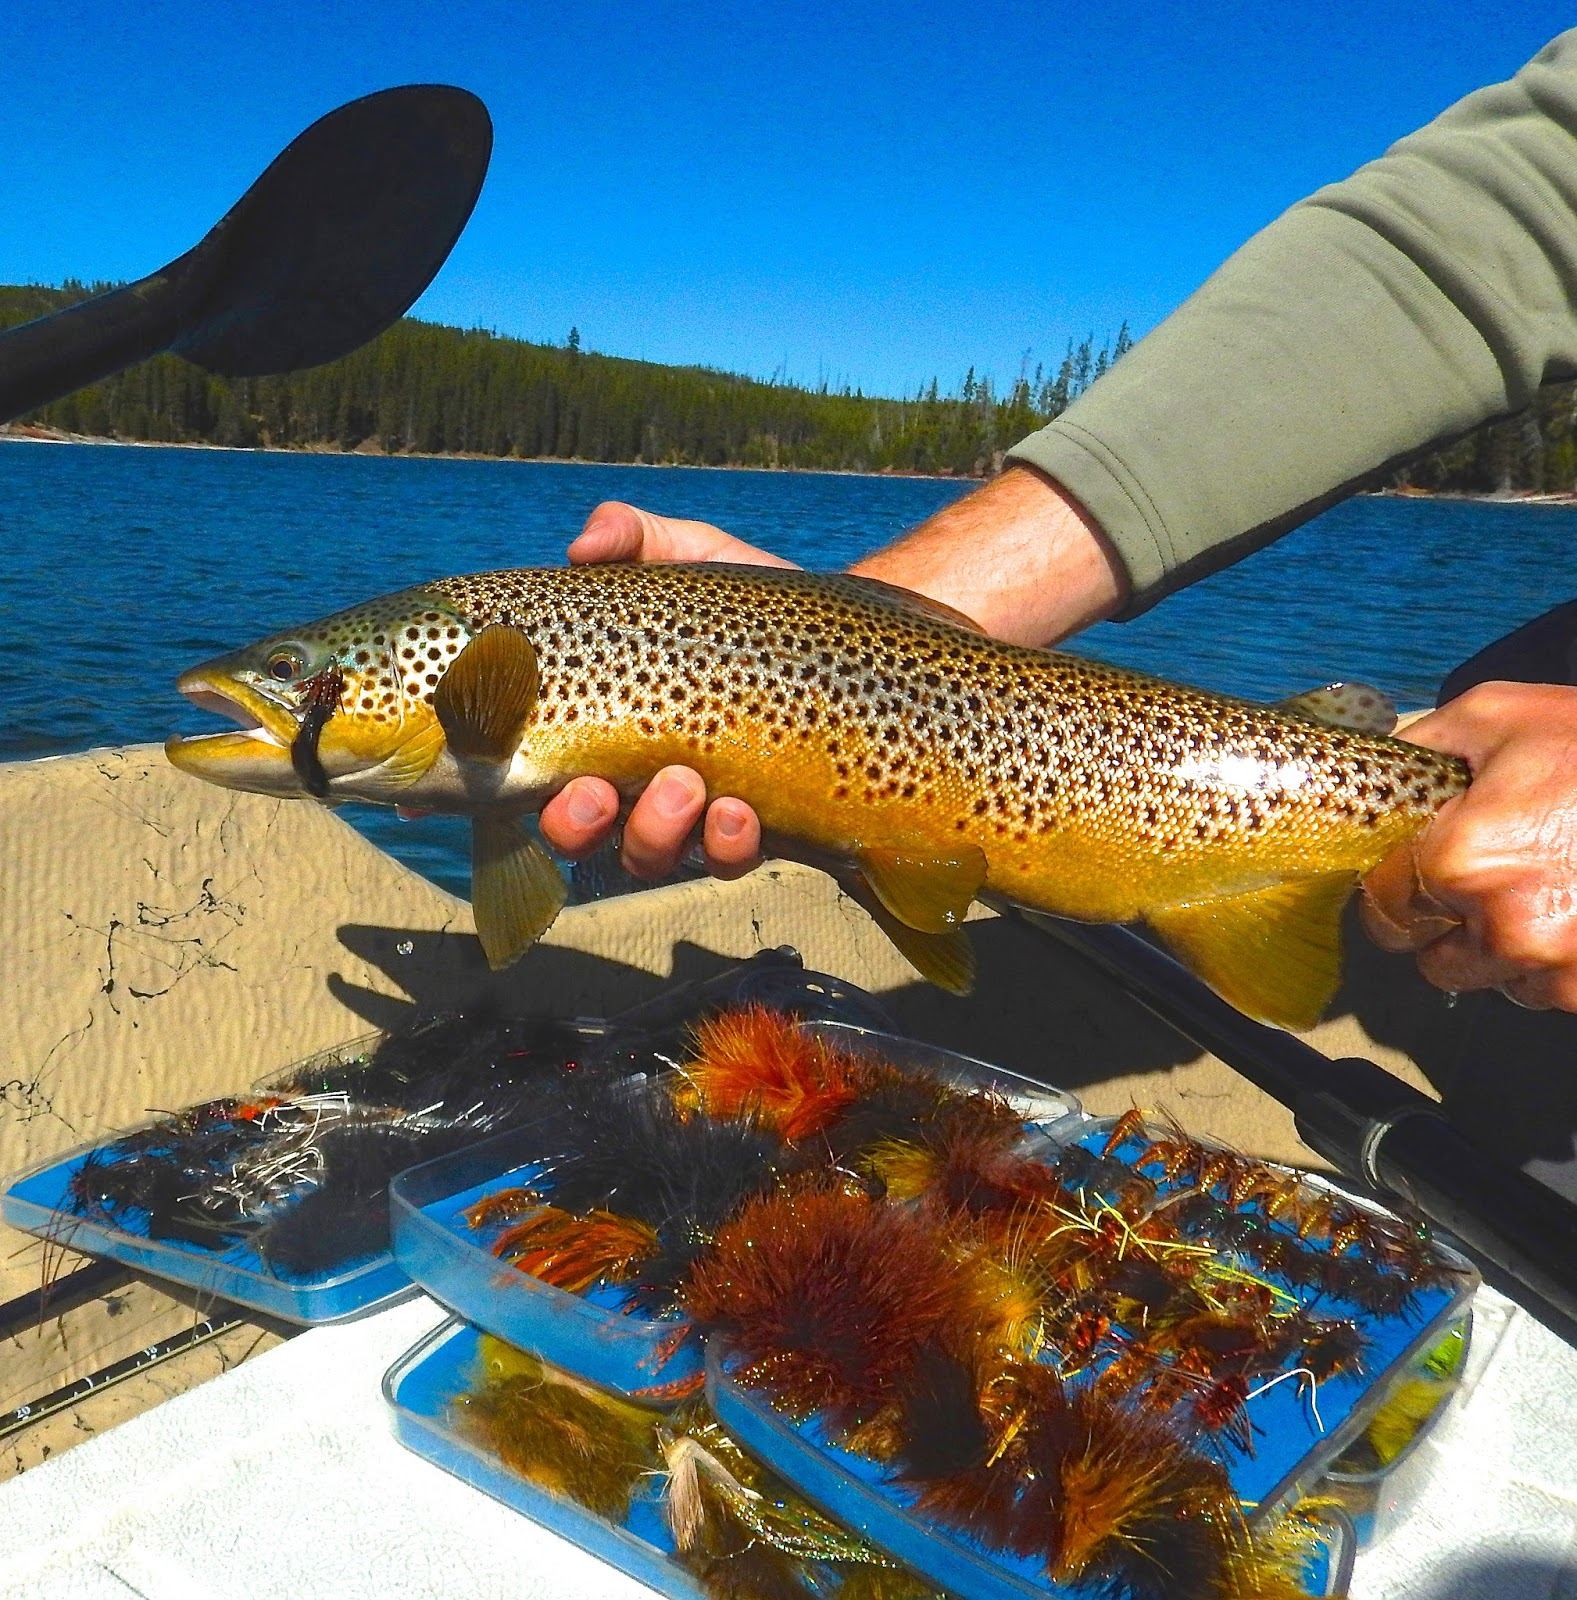 Jackson hole fly fishing report october 5 2016 for Jackson lake fishing report